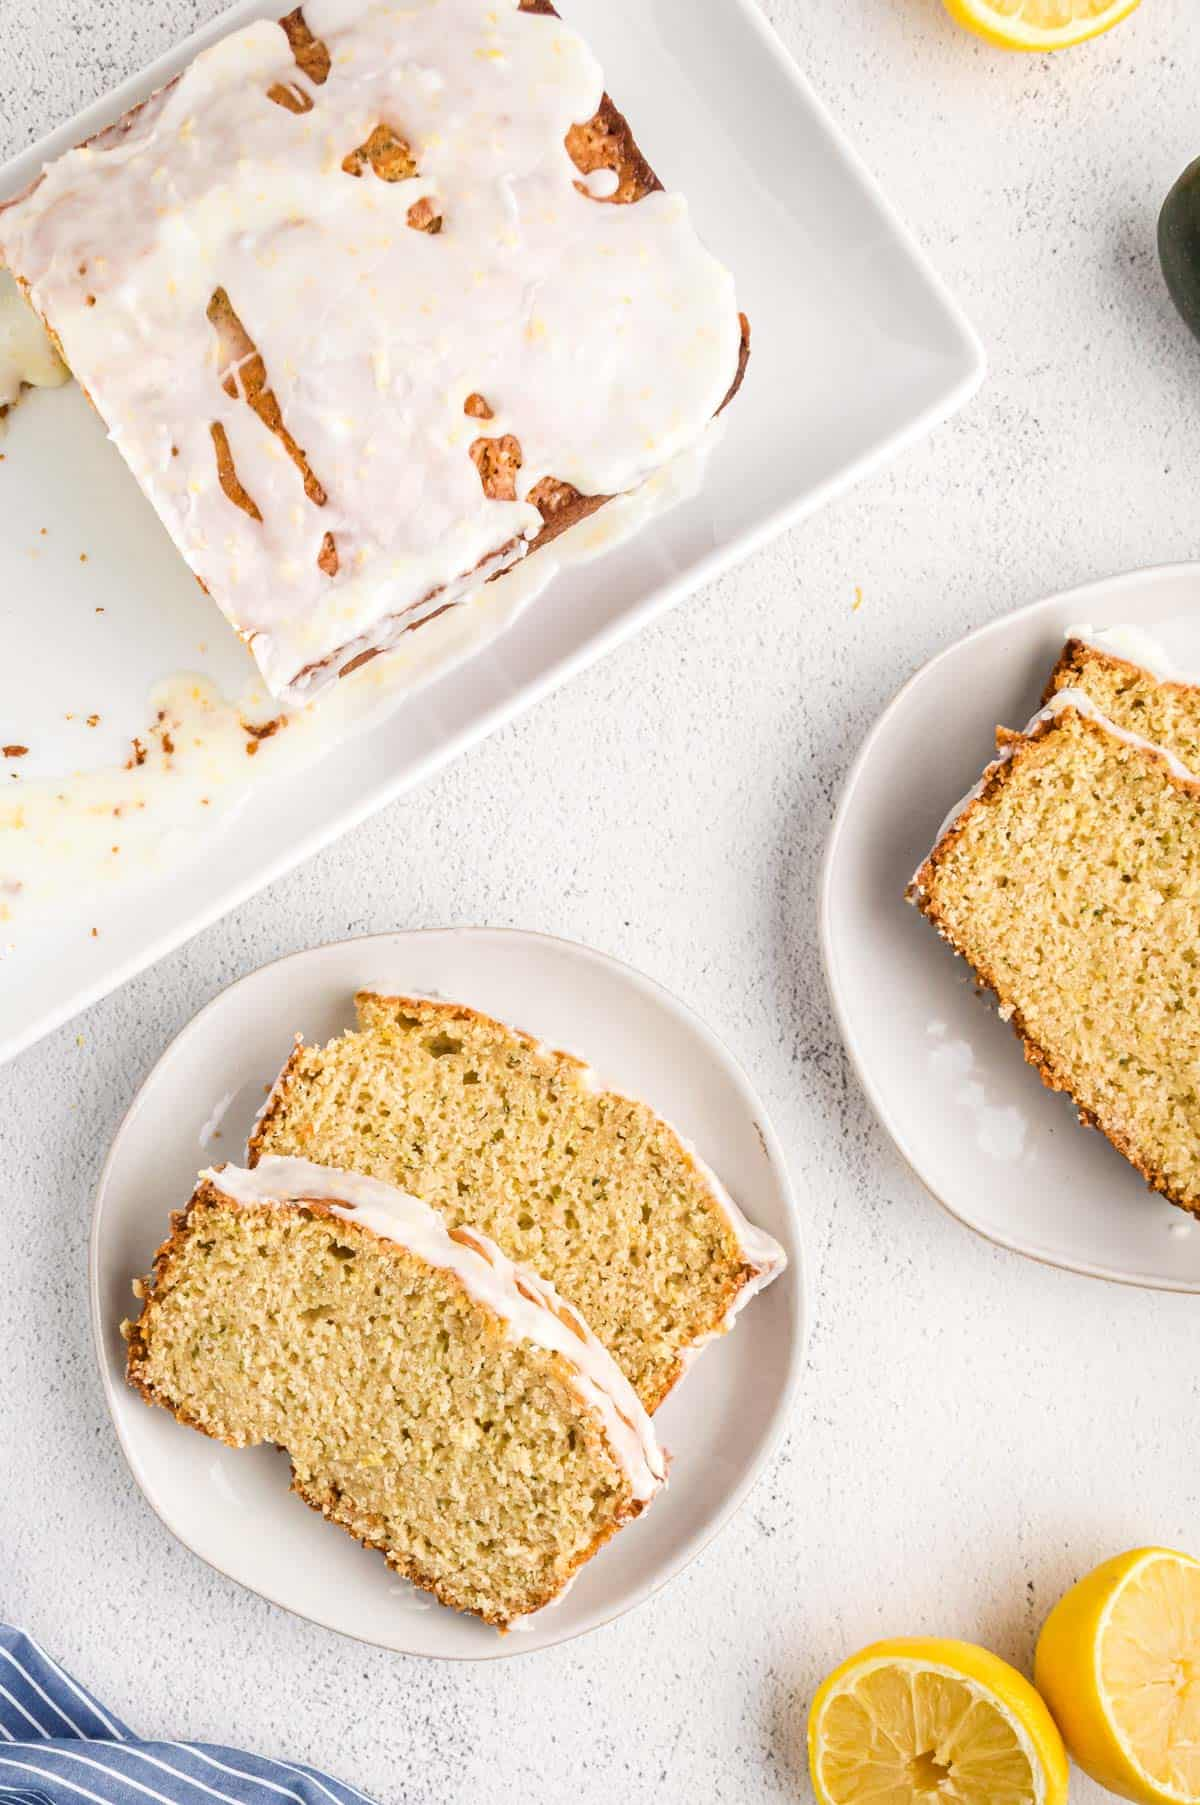 Overhead view of slices of lemon zucchini bread on two white dessert plates.